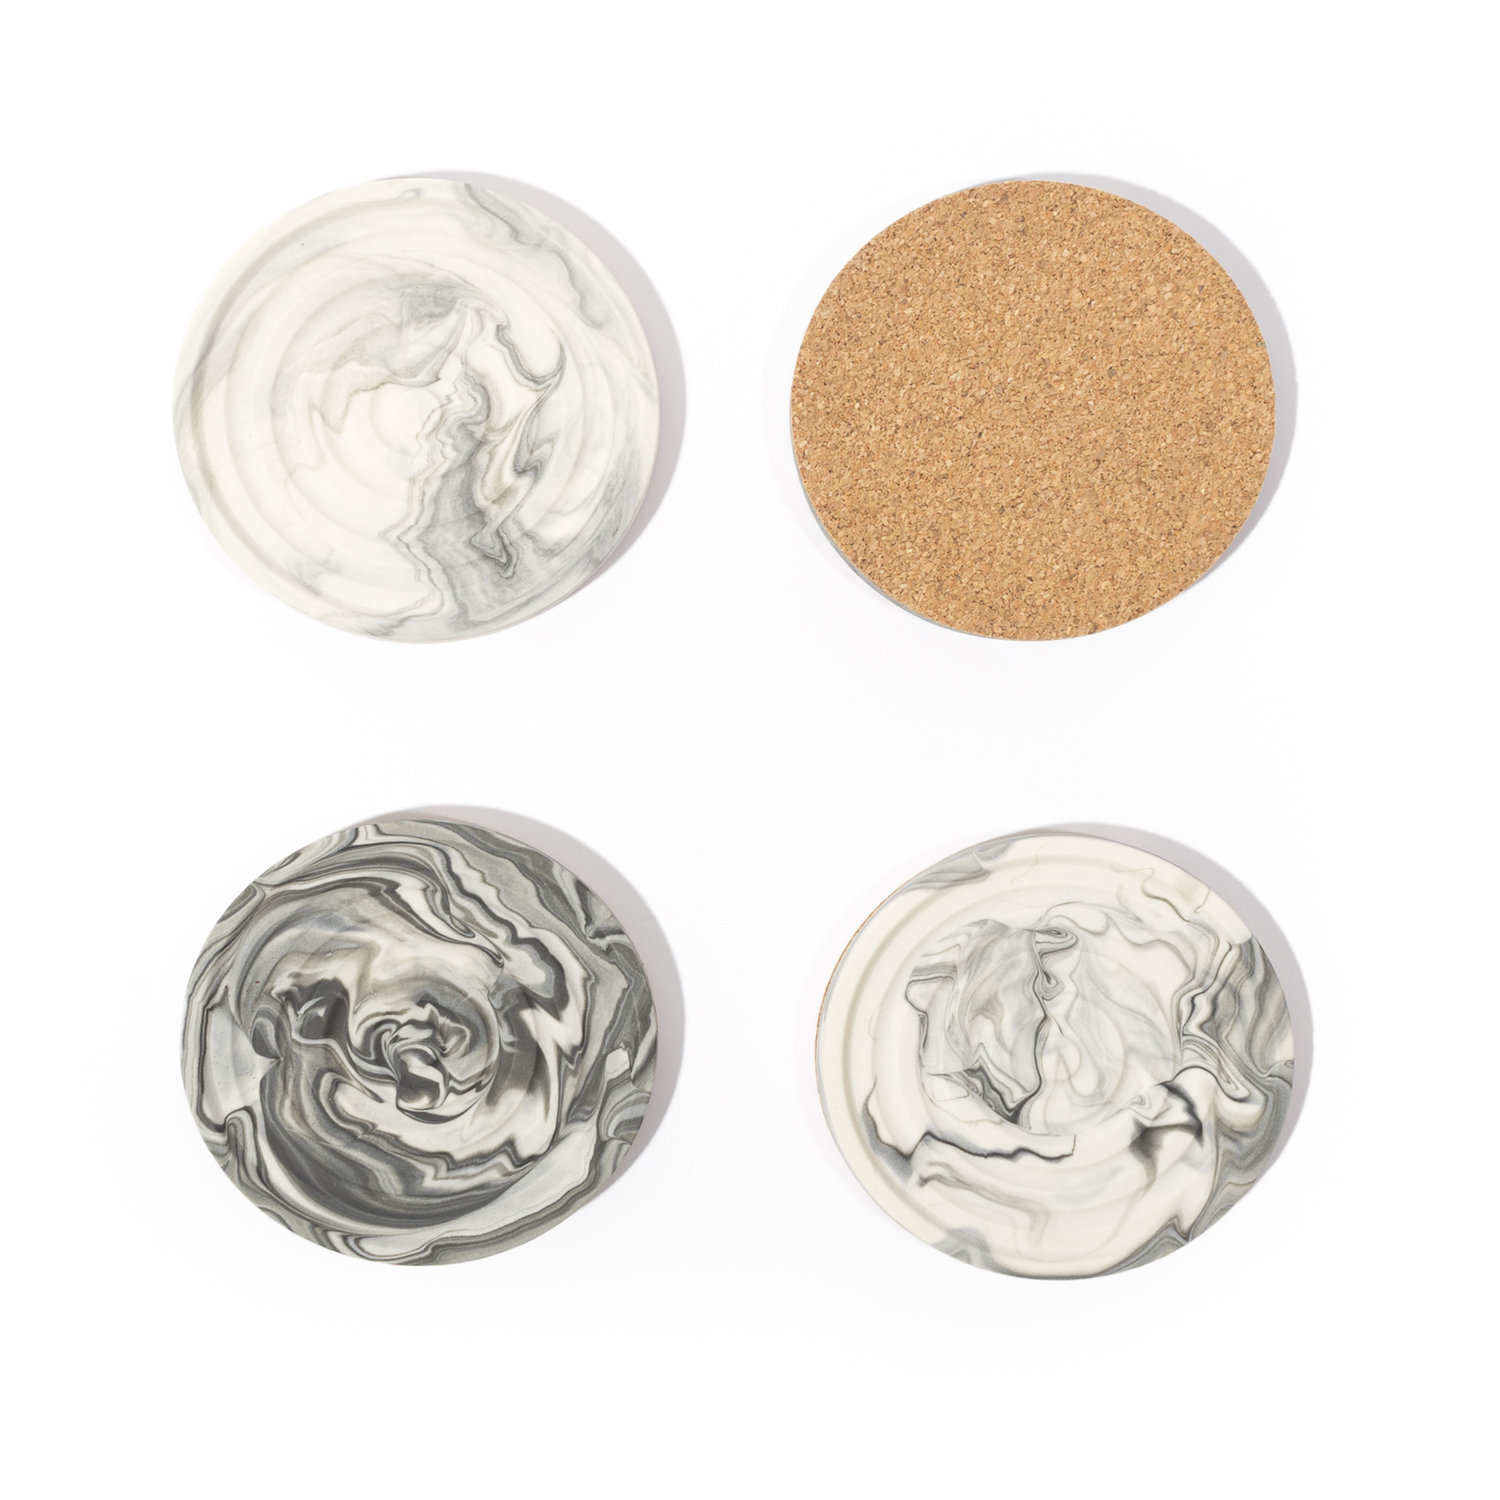 Andrew Molleur Marbled Coasters: Set of 4